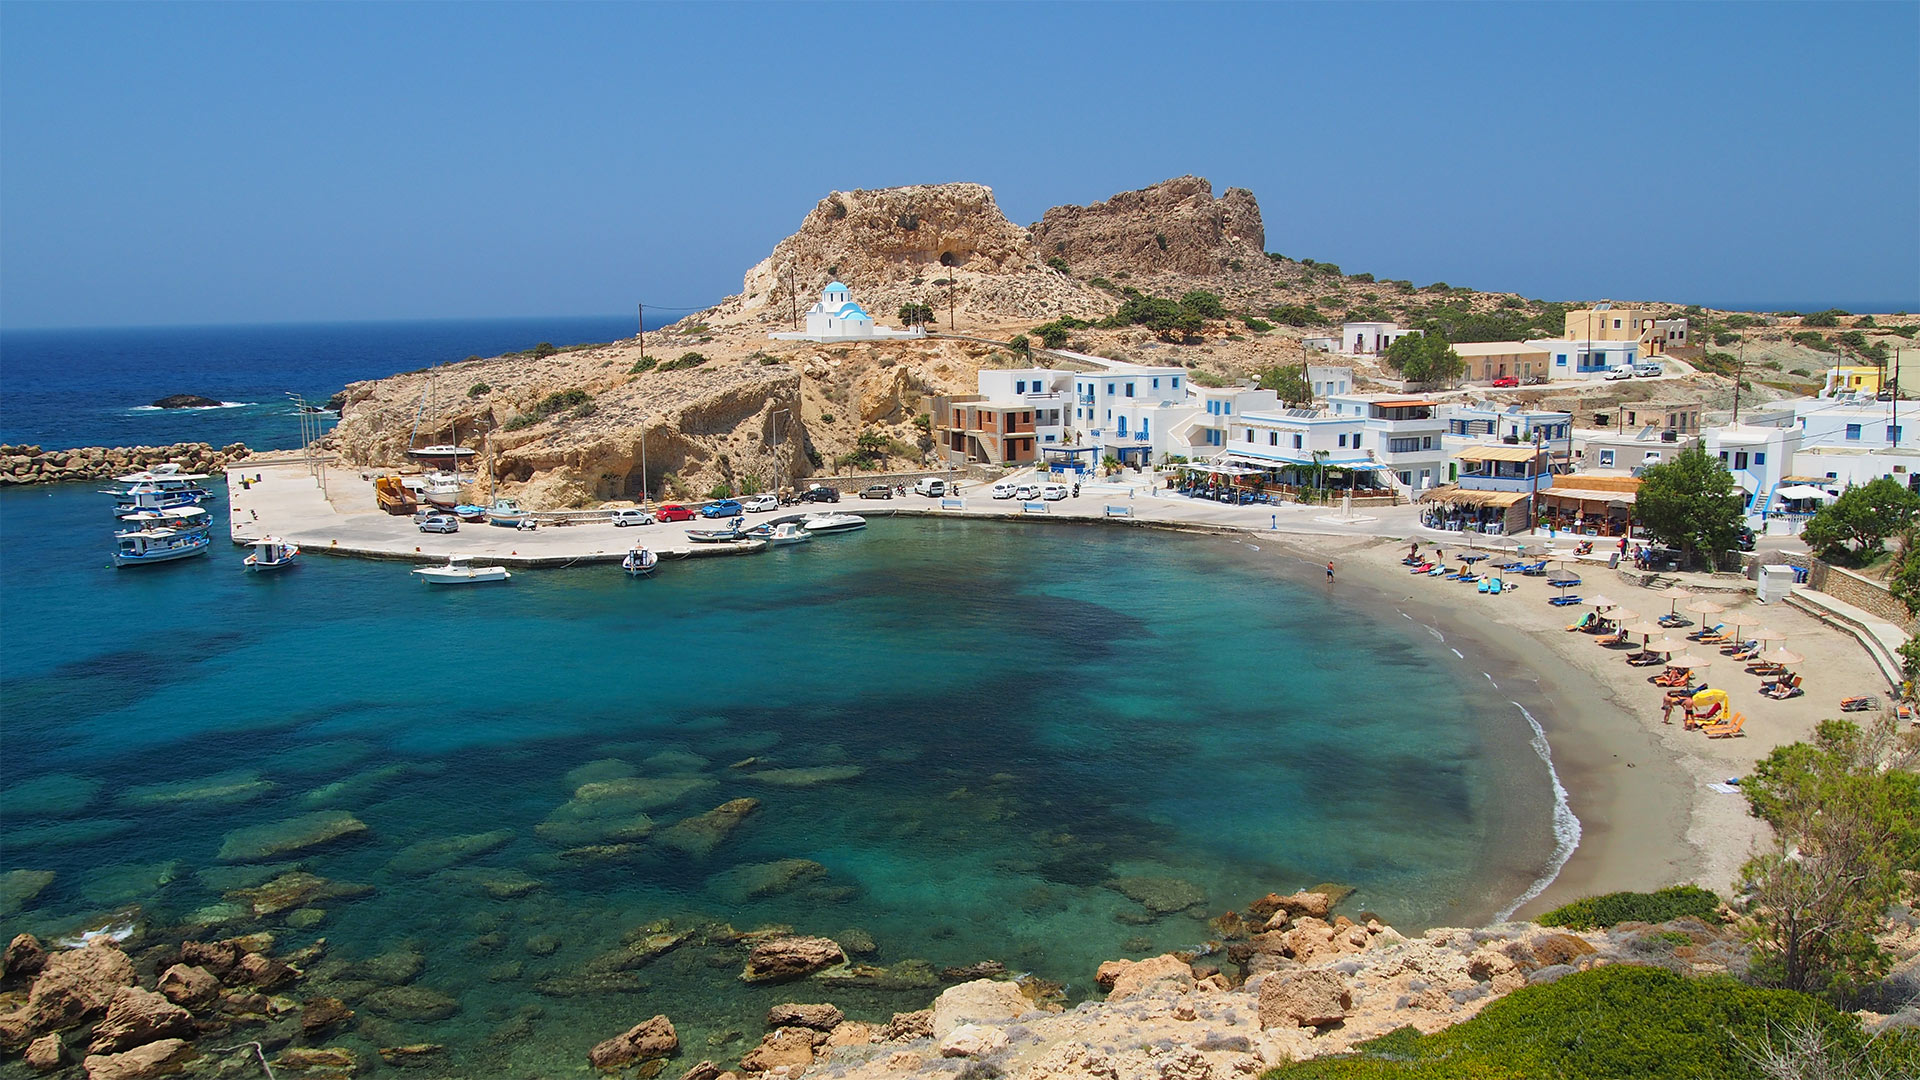 images/slider/finiki-karpathos-slider.jpg